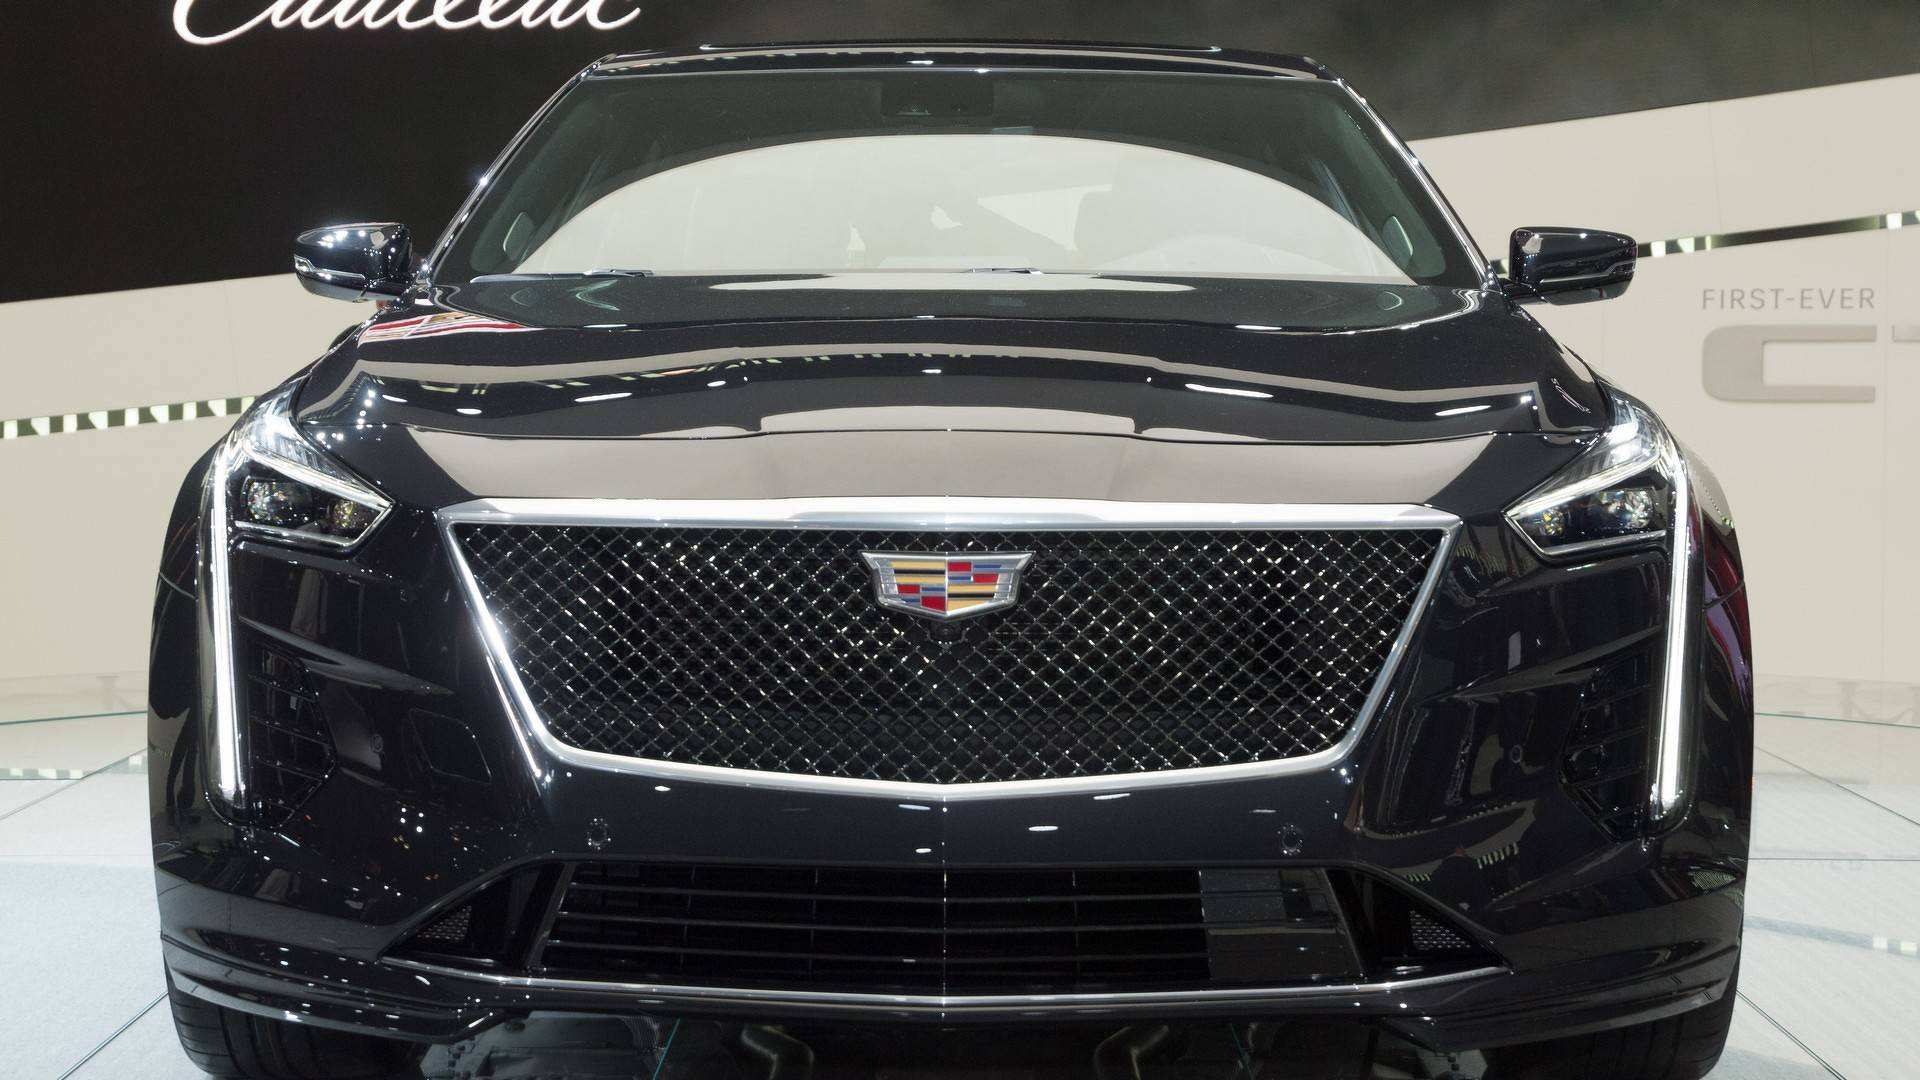 78 All New New Ct6 Cadillac 2019 Price Review And Specs Ratings by New Ct6 Cadillac 2019 Price Review And Specs